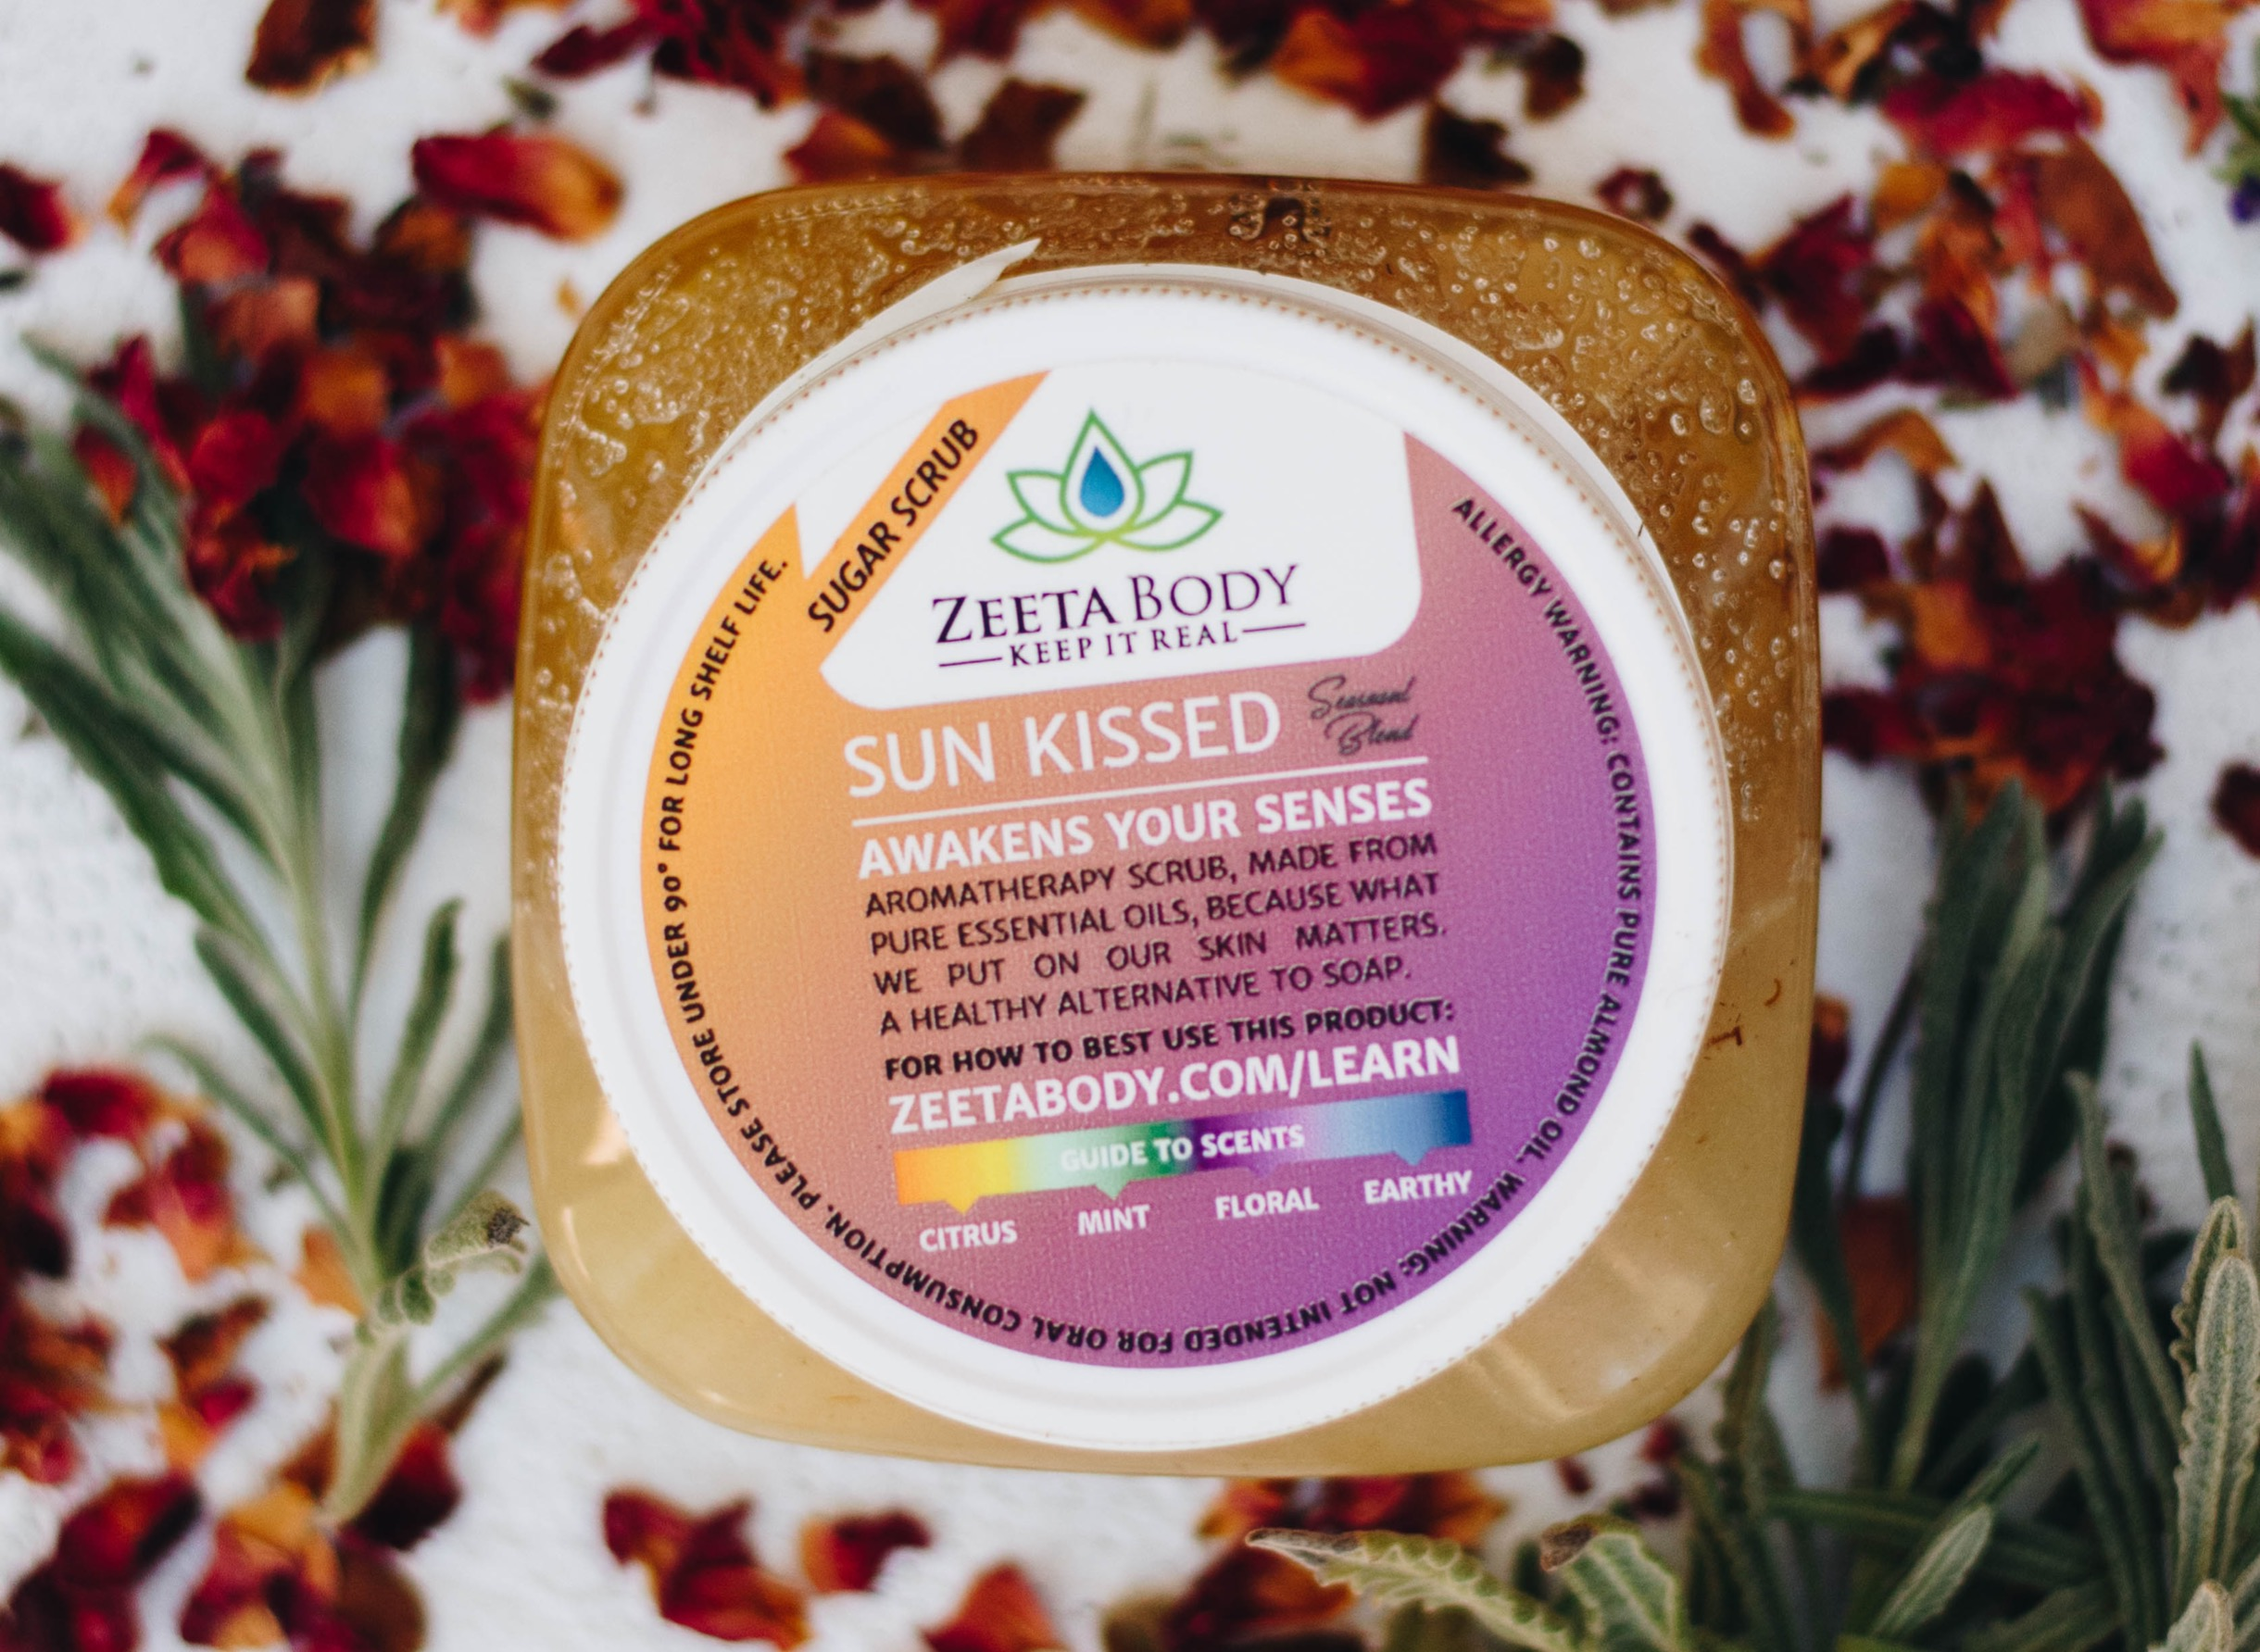 Zeeta Body - Sugar Scrub, essential oils